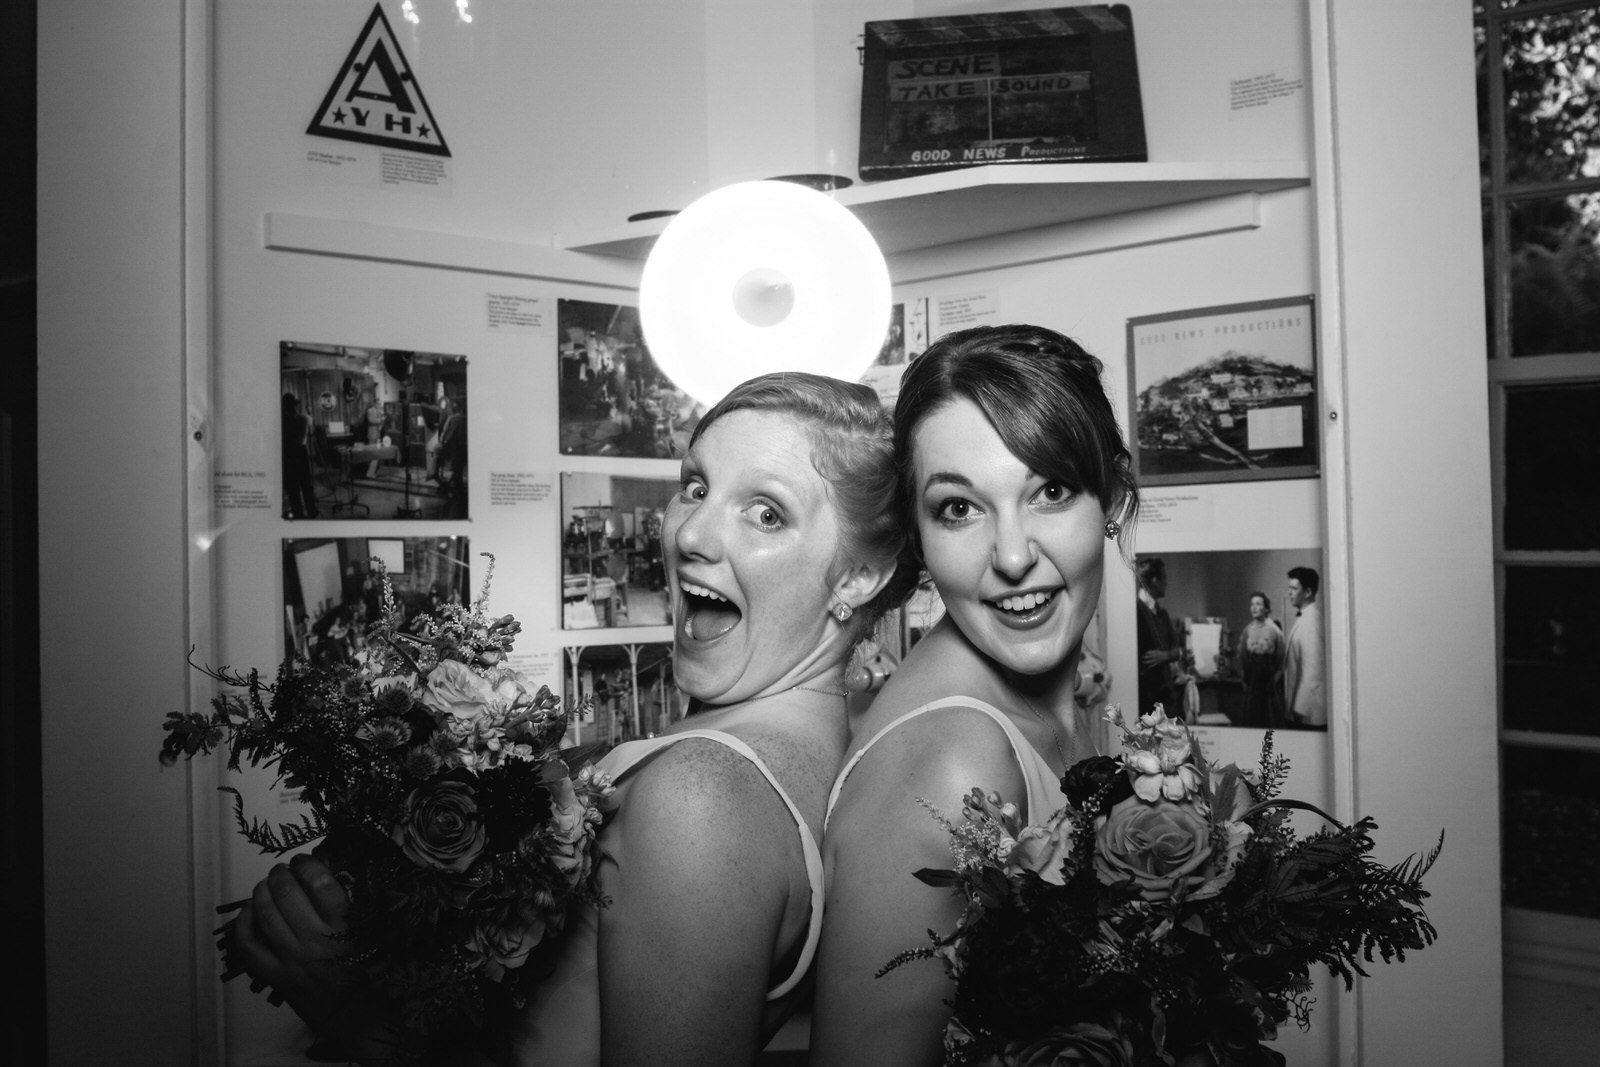 Richard-Donna-Wedding-Photo-Booth-3.jpg